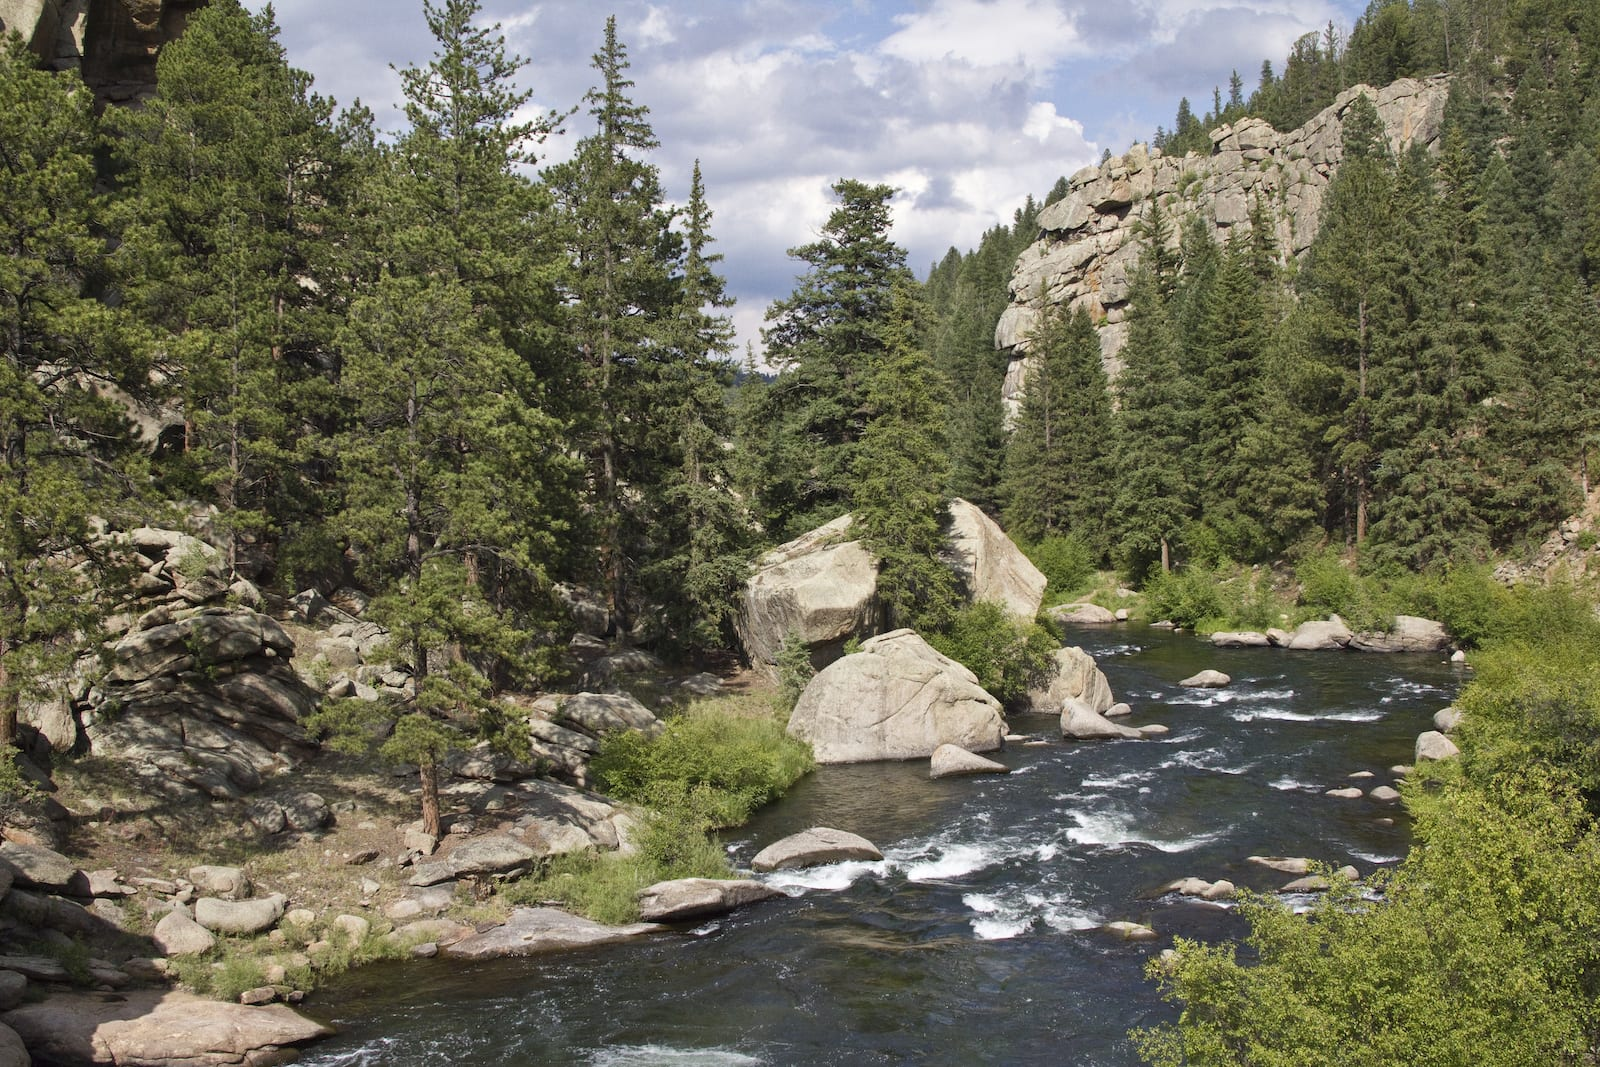 South Platte River, Colorado